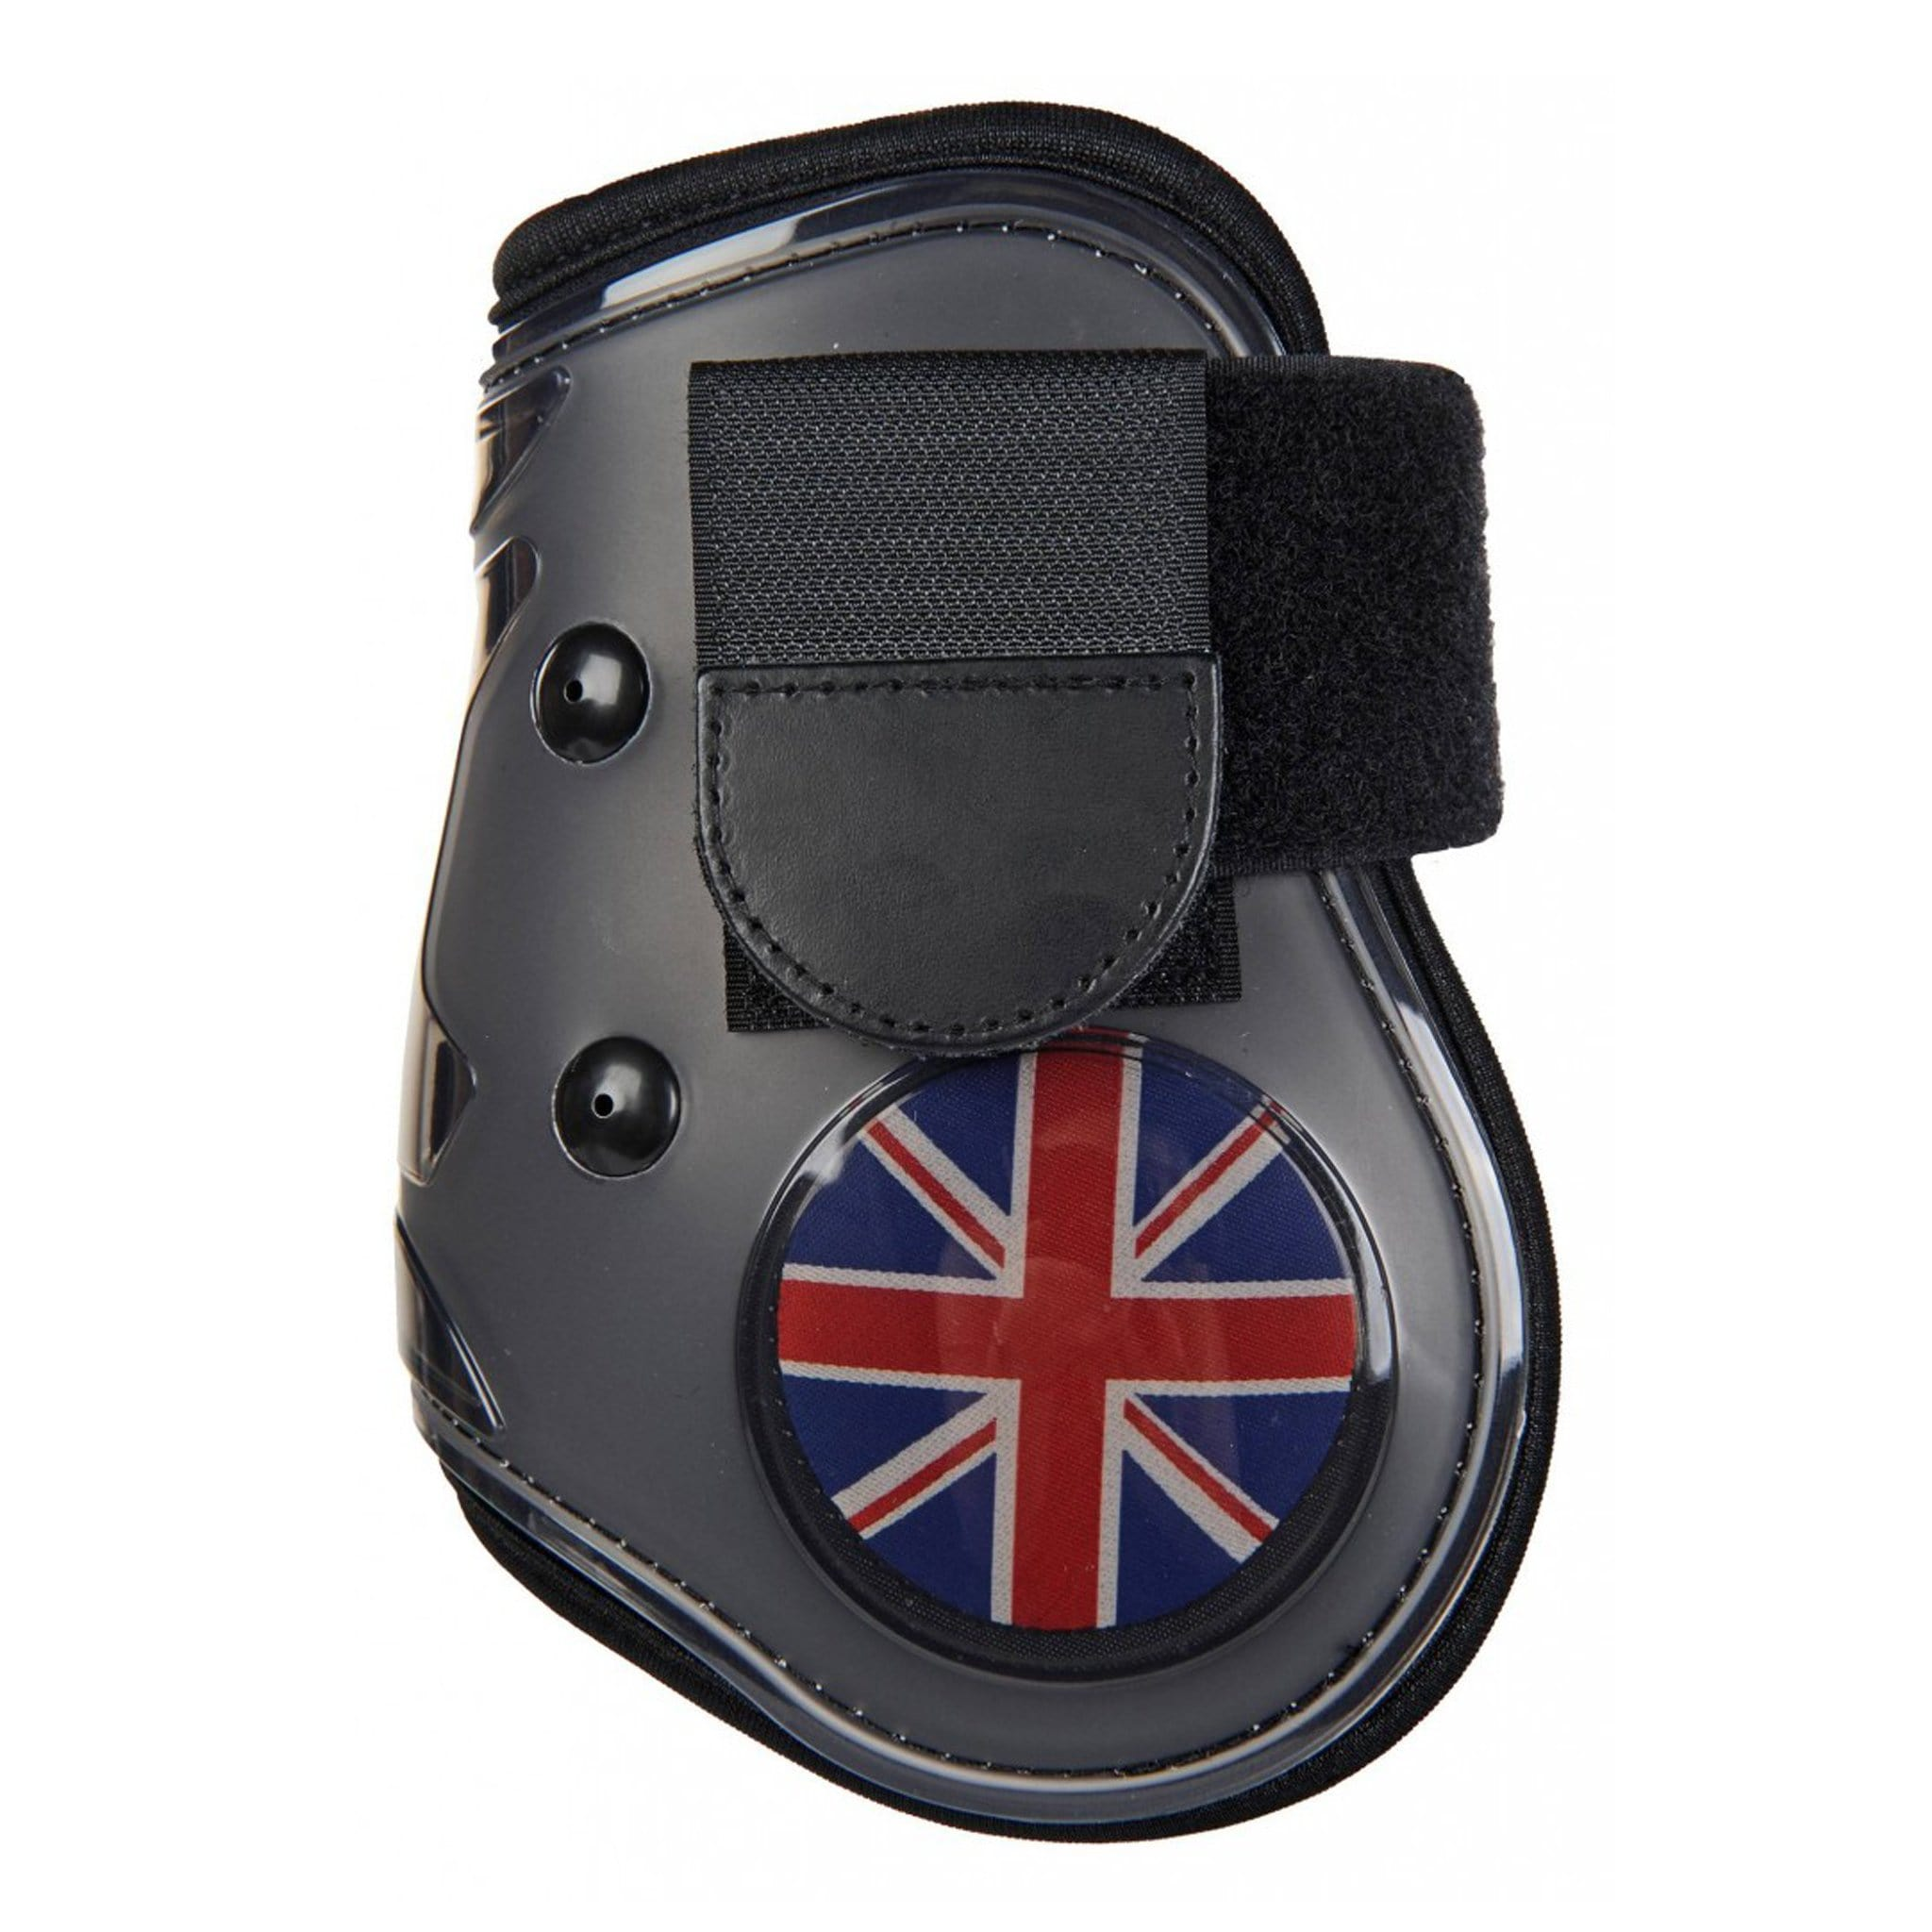 HKM Flags Fetlock Boots GBR 7049 United Kingdom UK